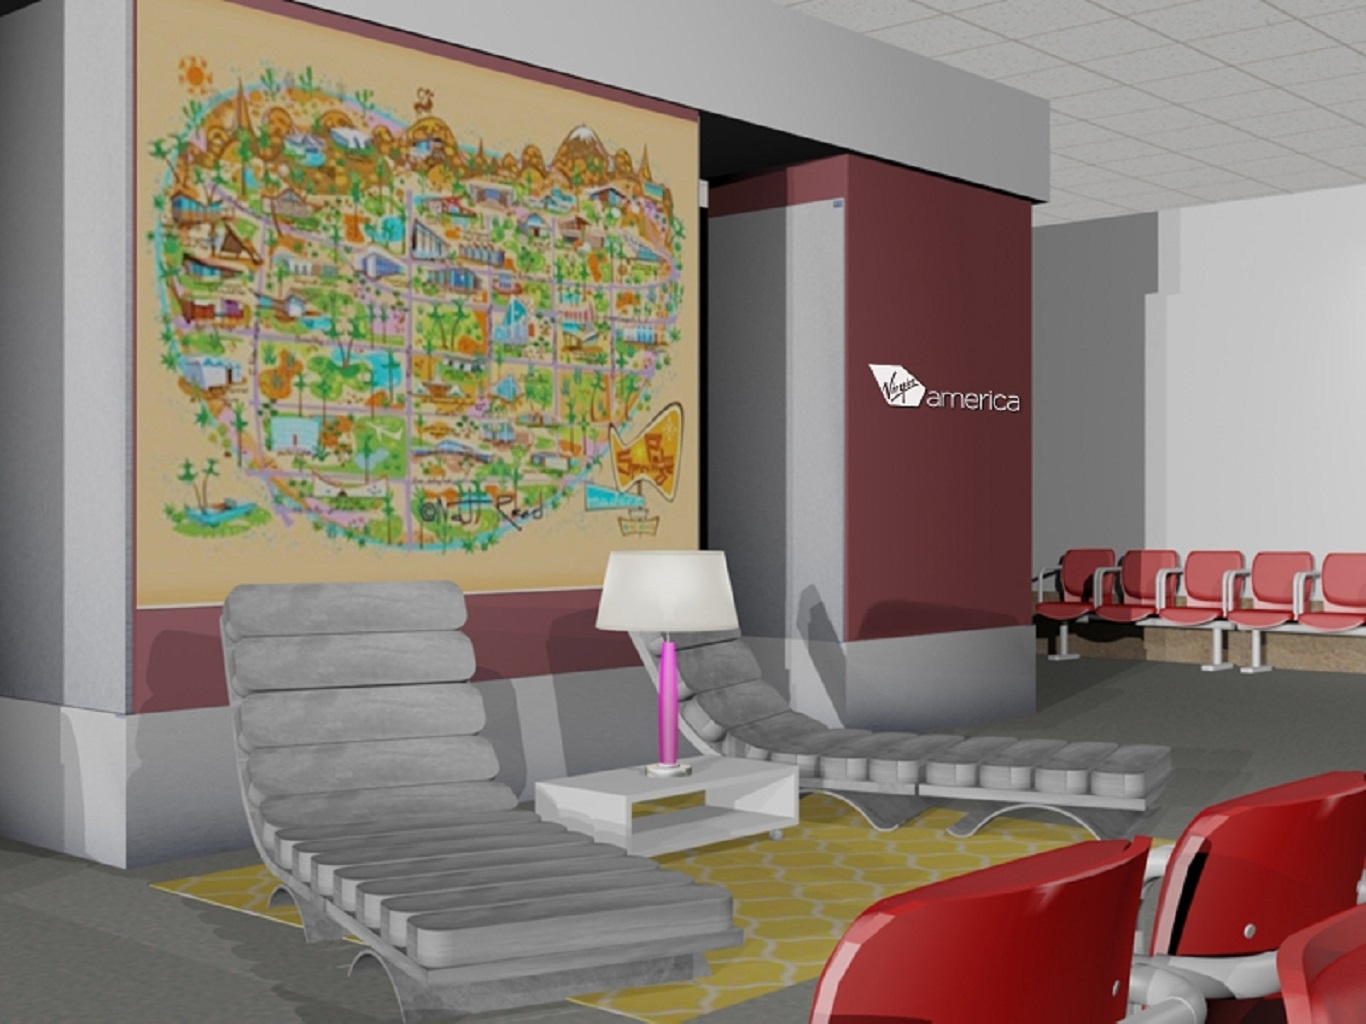 Virgin America PSP Rendering